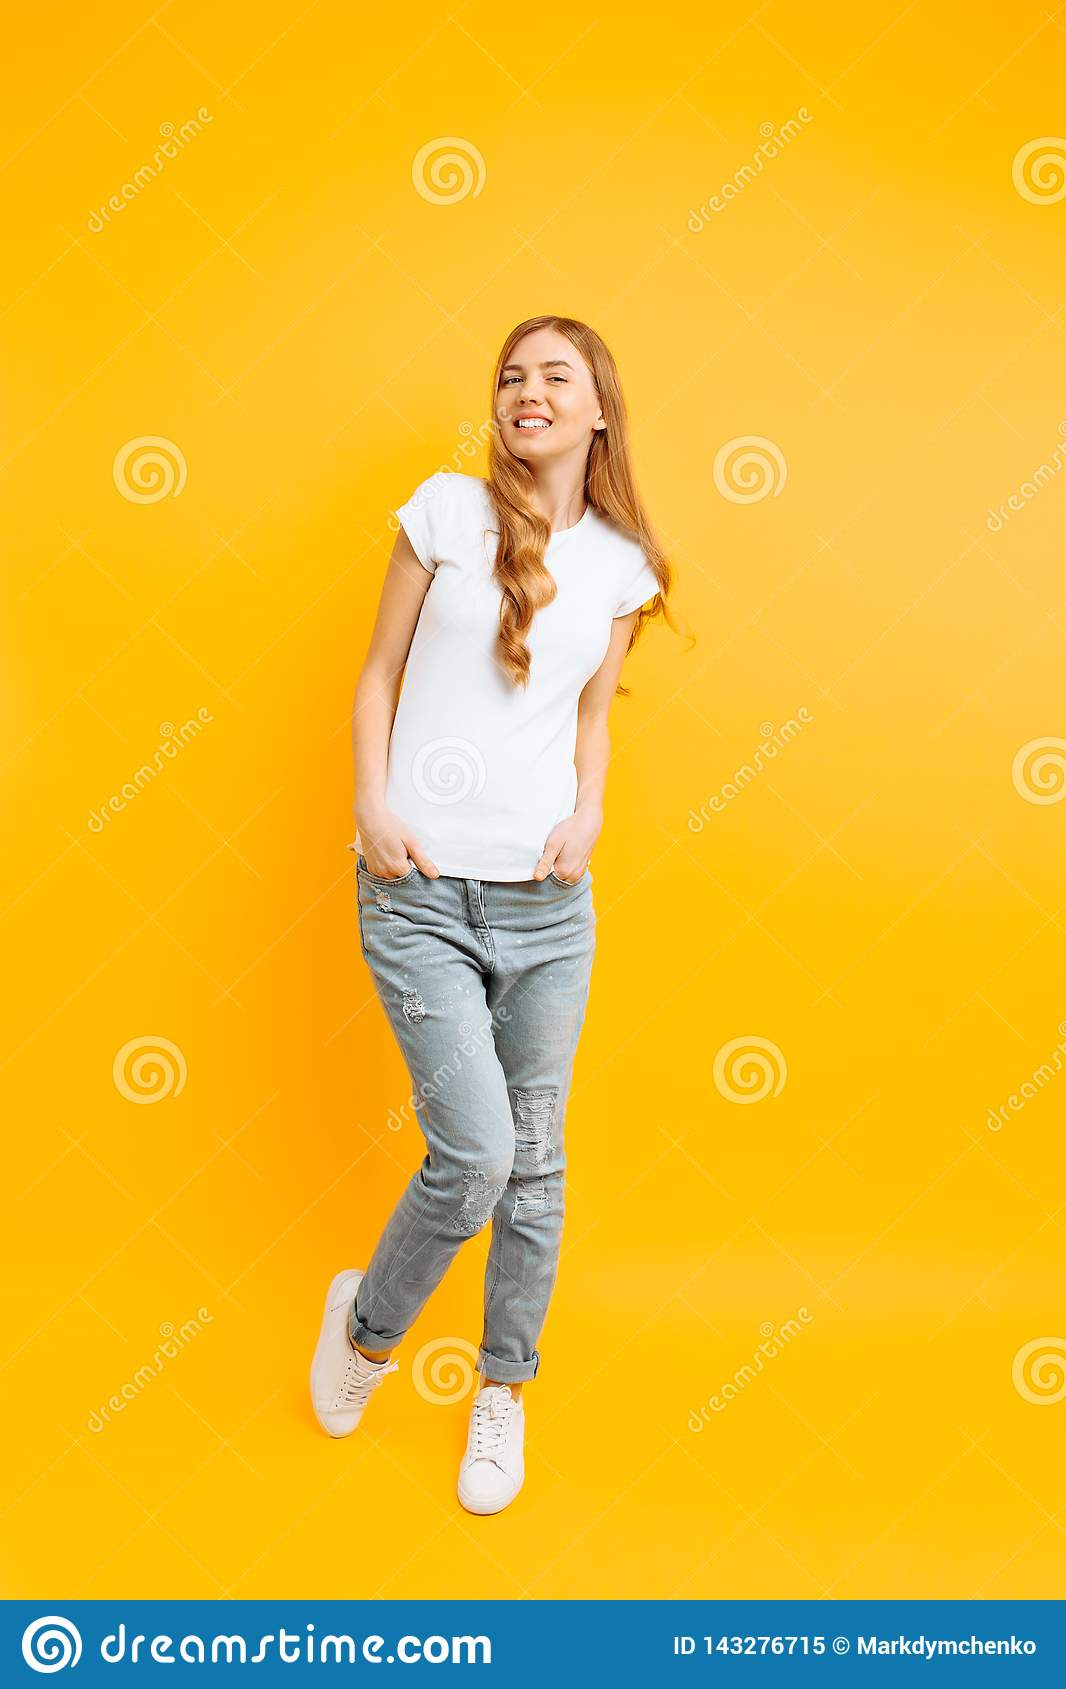 Full length portrait of a cheerful beautiful girl, posing on a yellow background